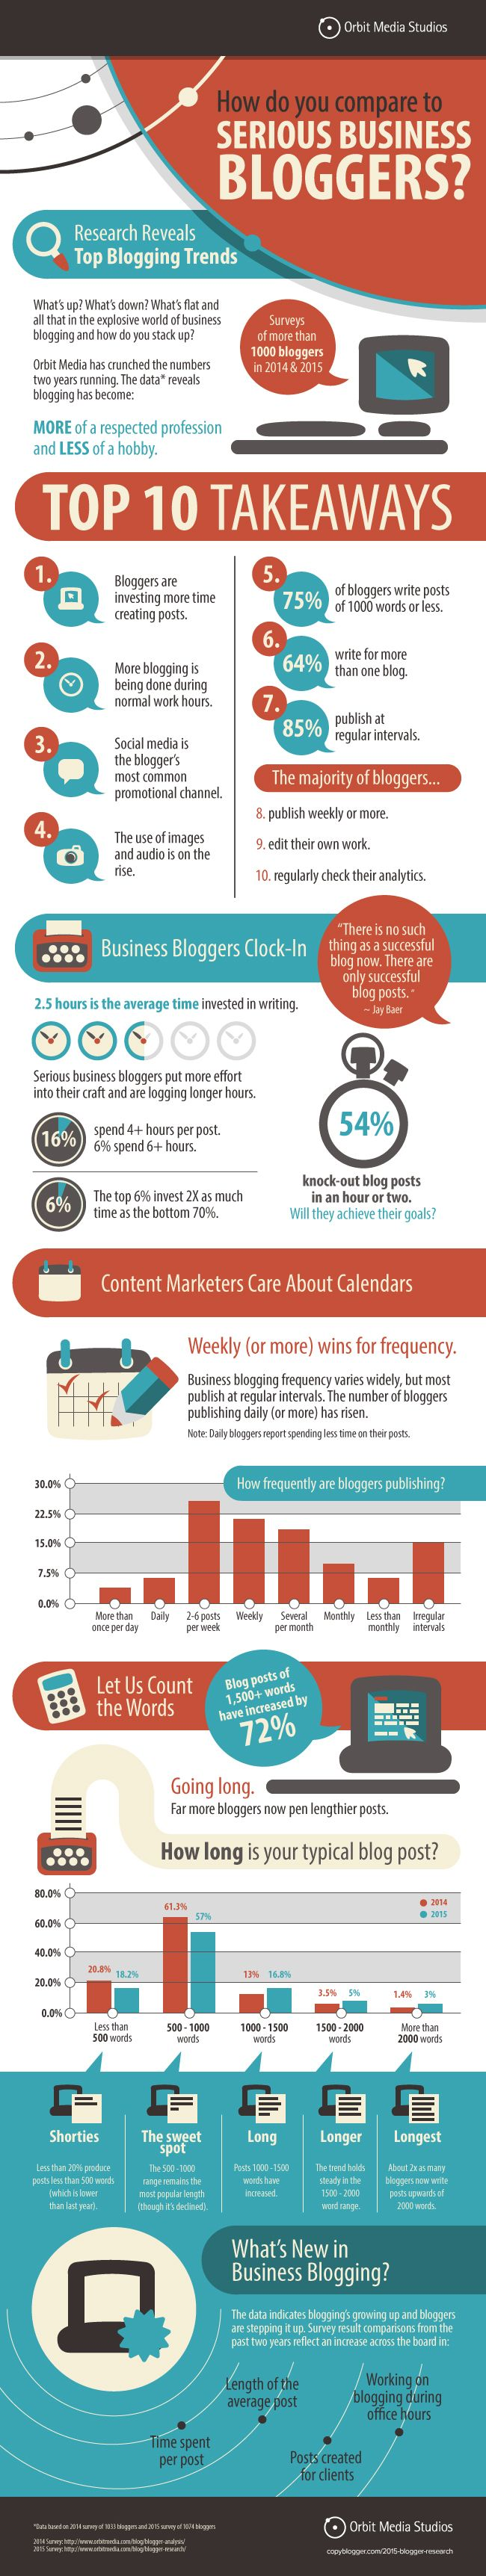 Infographic about blogging for business